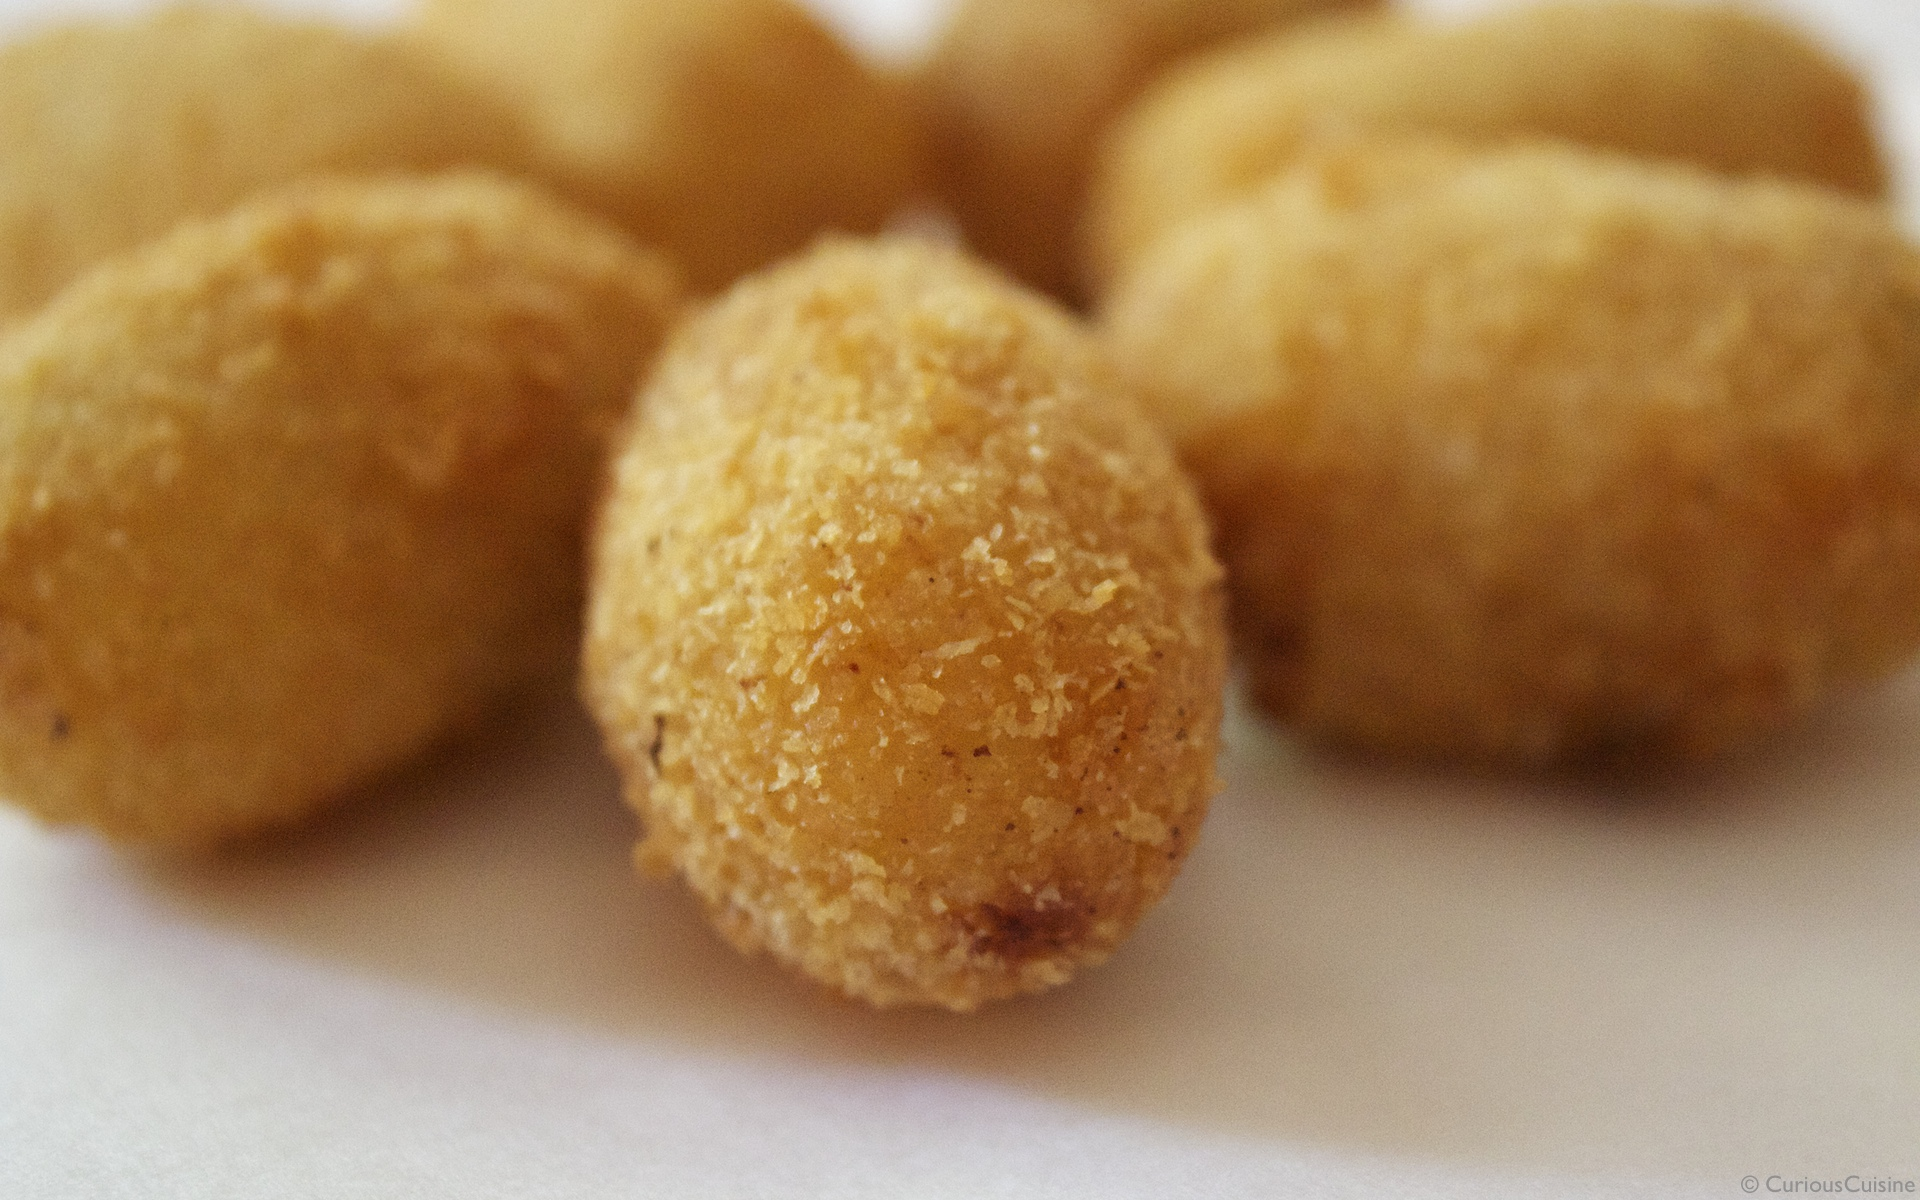 Showing traditional Spanish food culture: croquetas.